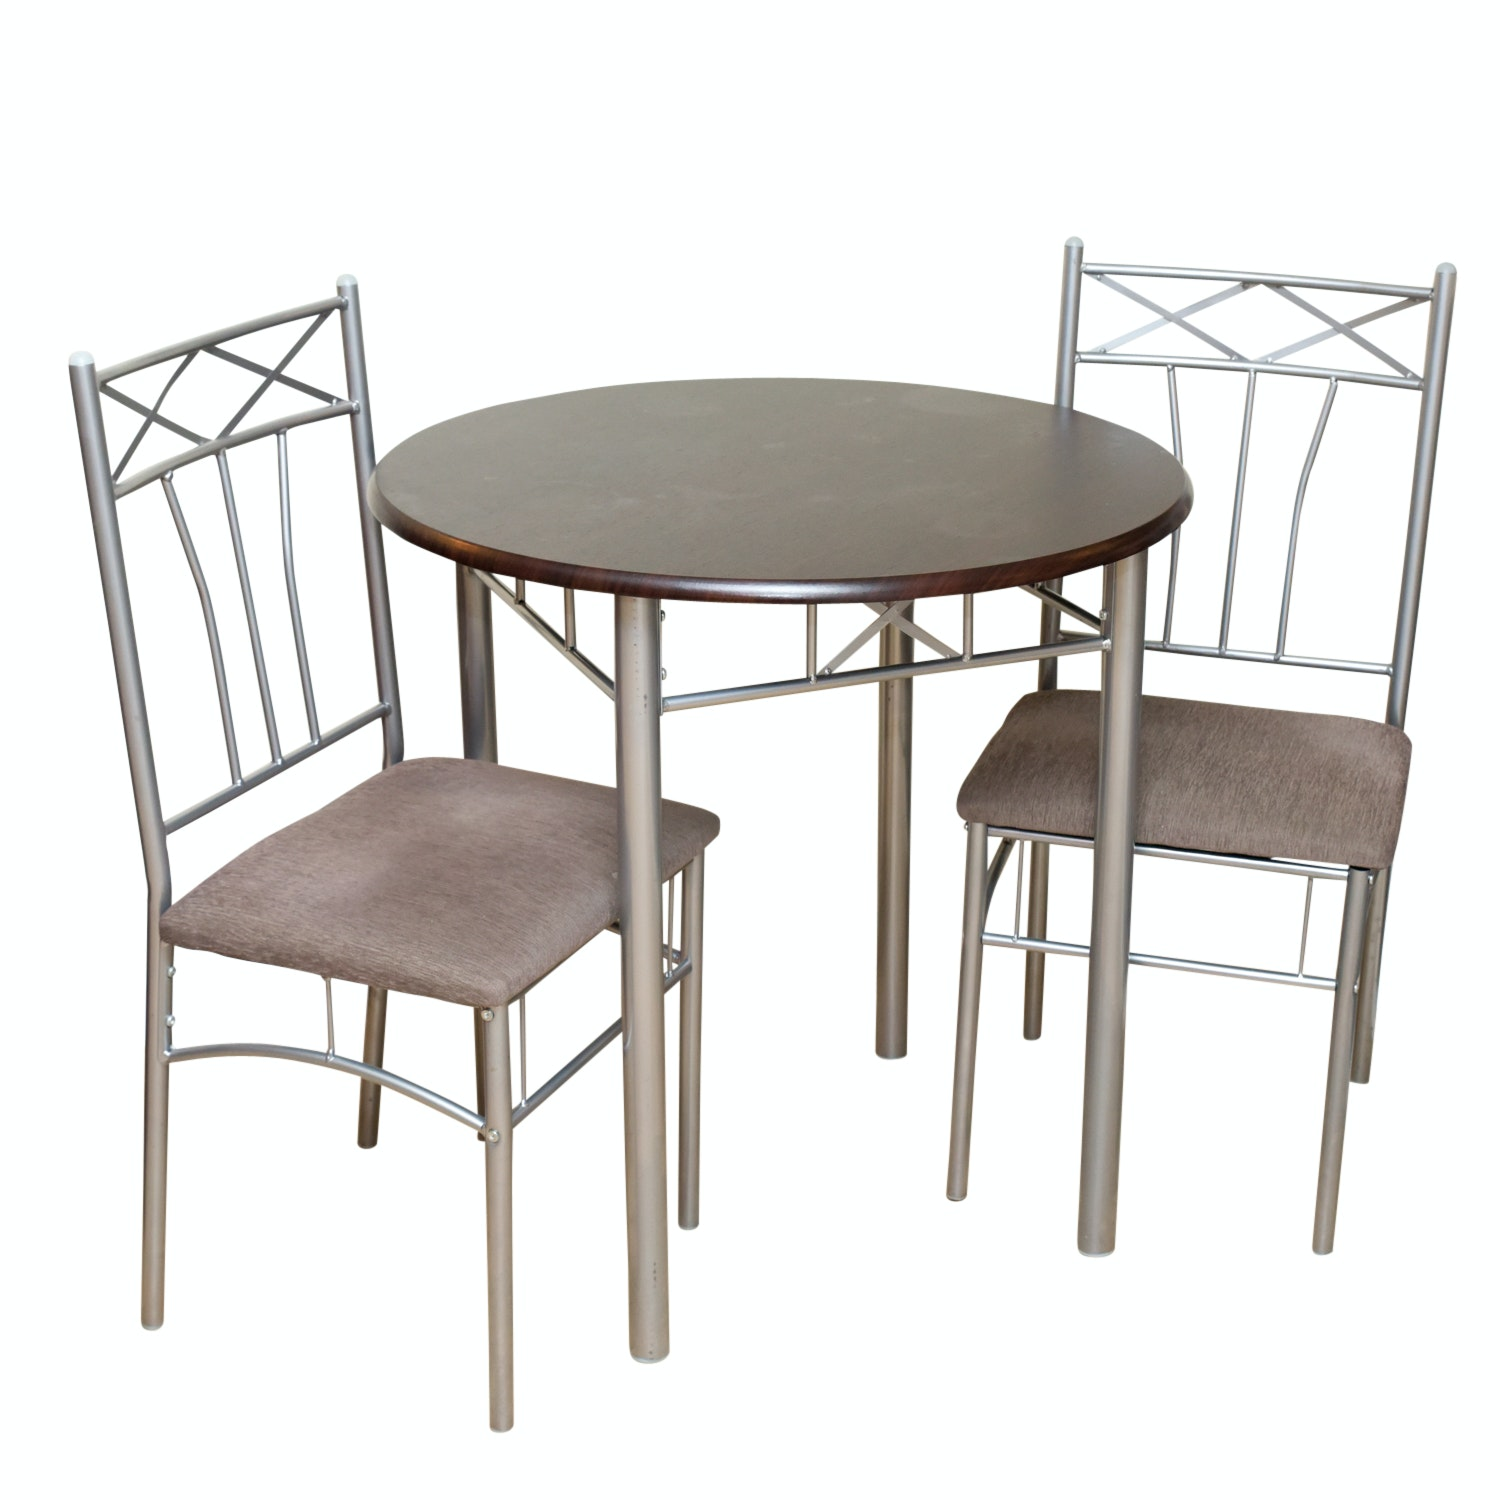 Brushed Chrome Finished Metal and Wood Dinette Set with Two Side Chairs